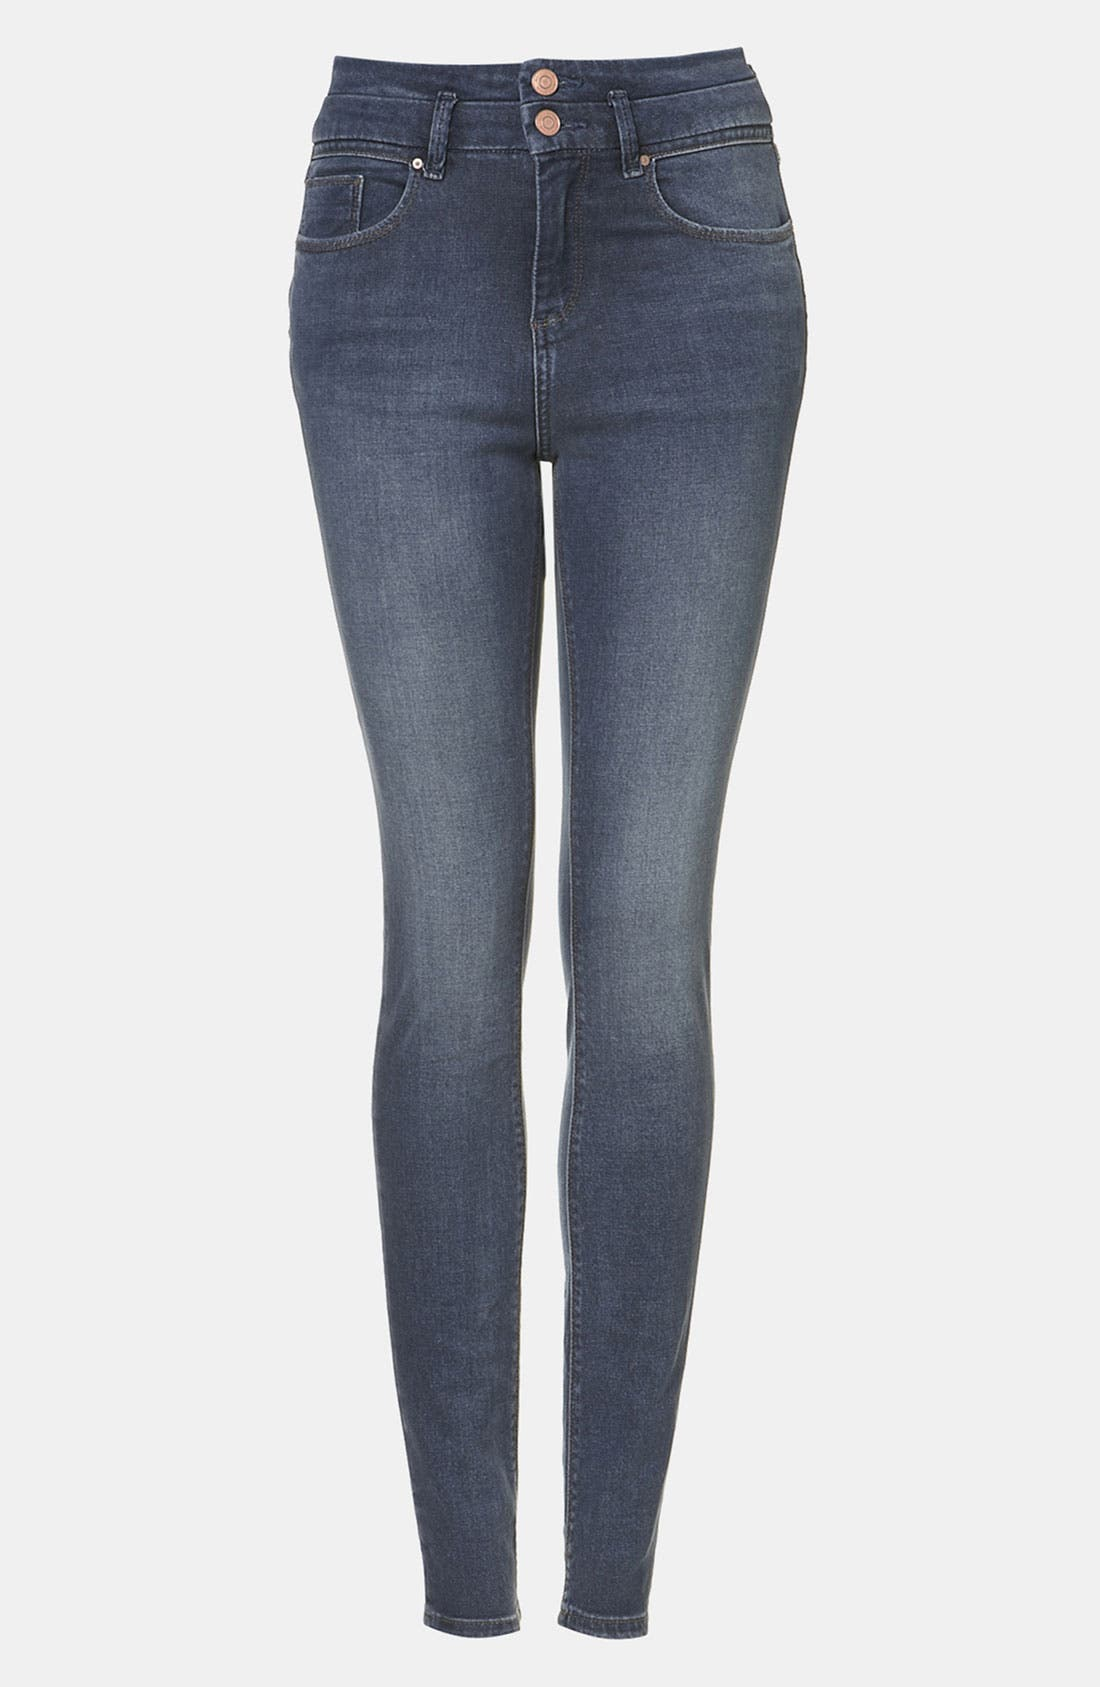 Alternate Image 1 Selected - Topshop Moto 'Kristen' High Waist Skinny Jeans (Midstone)